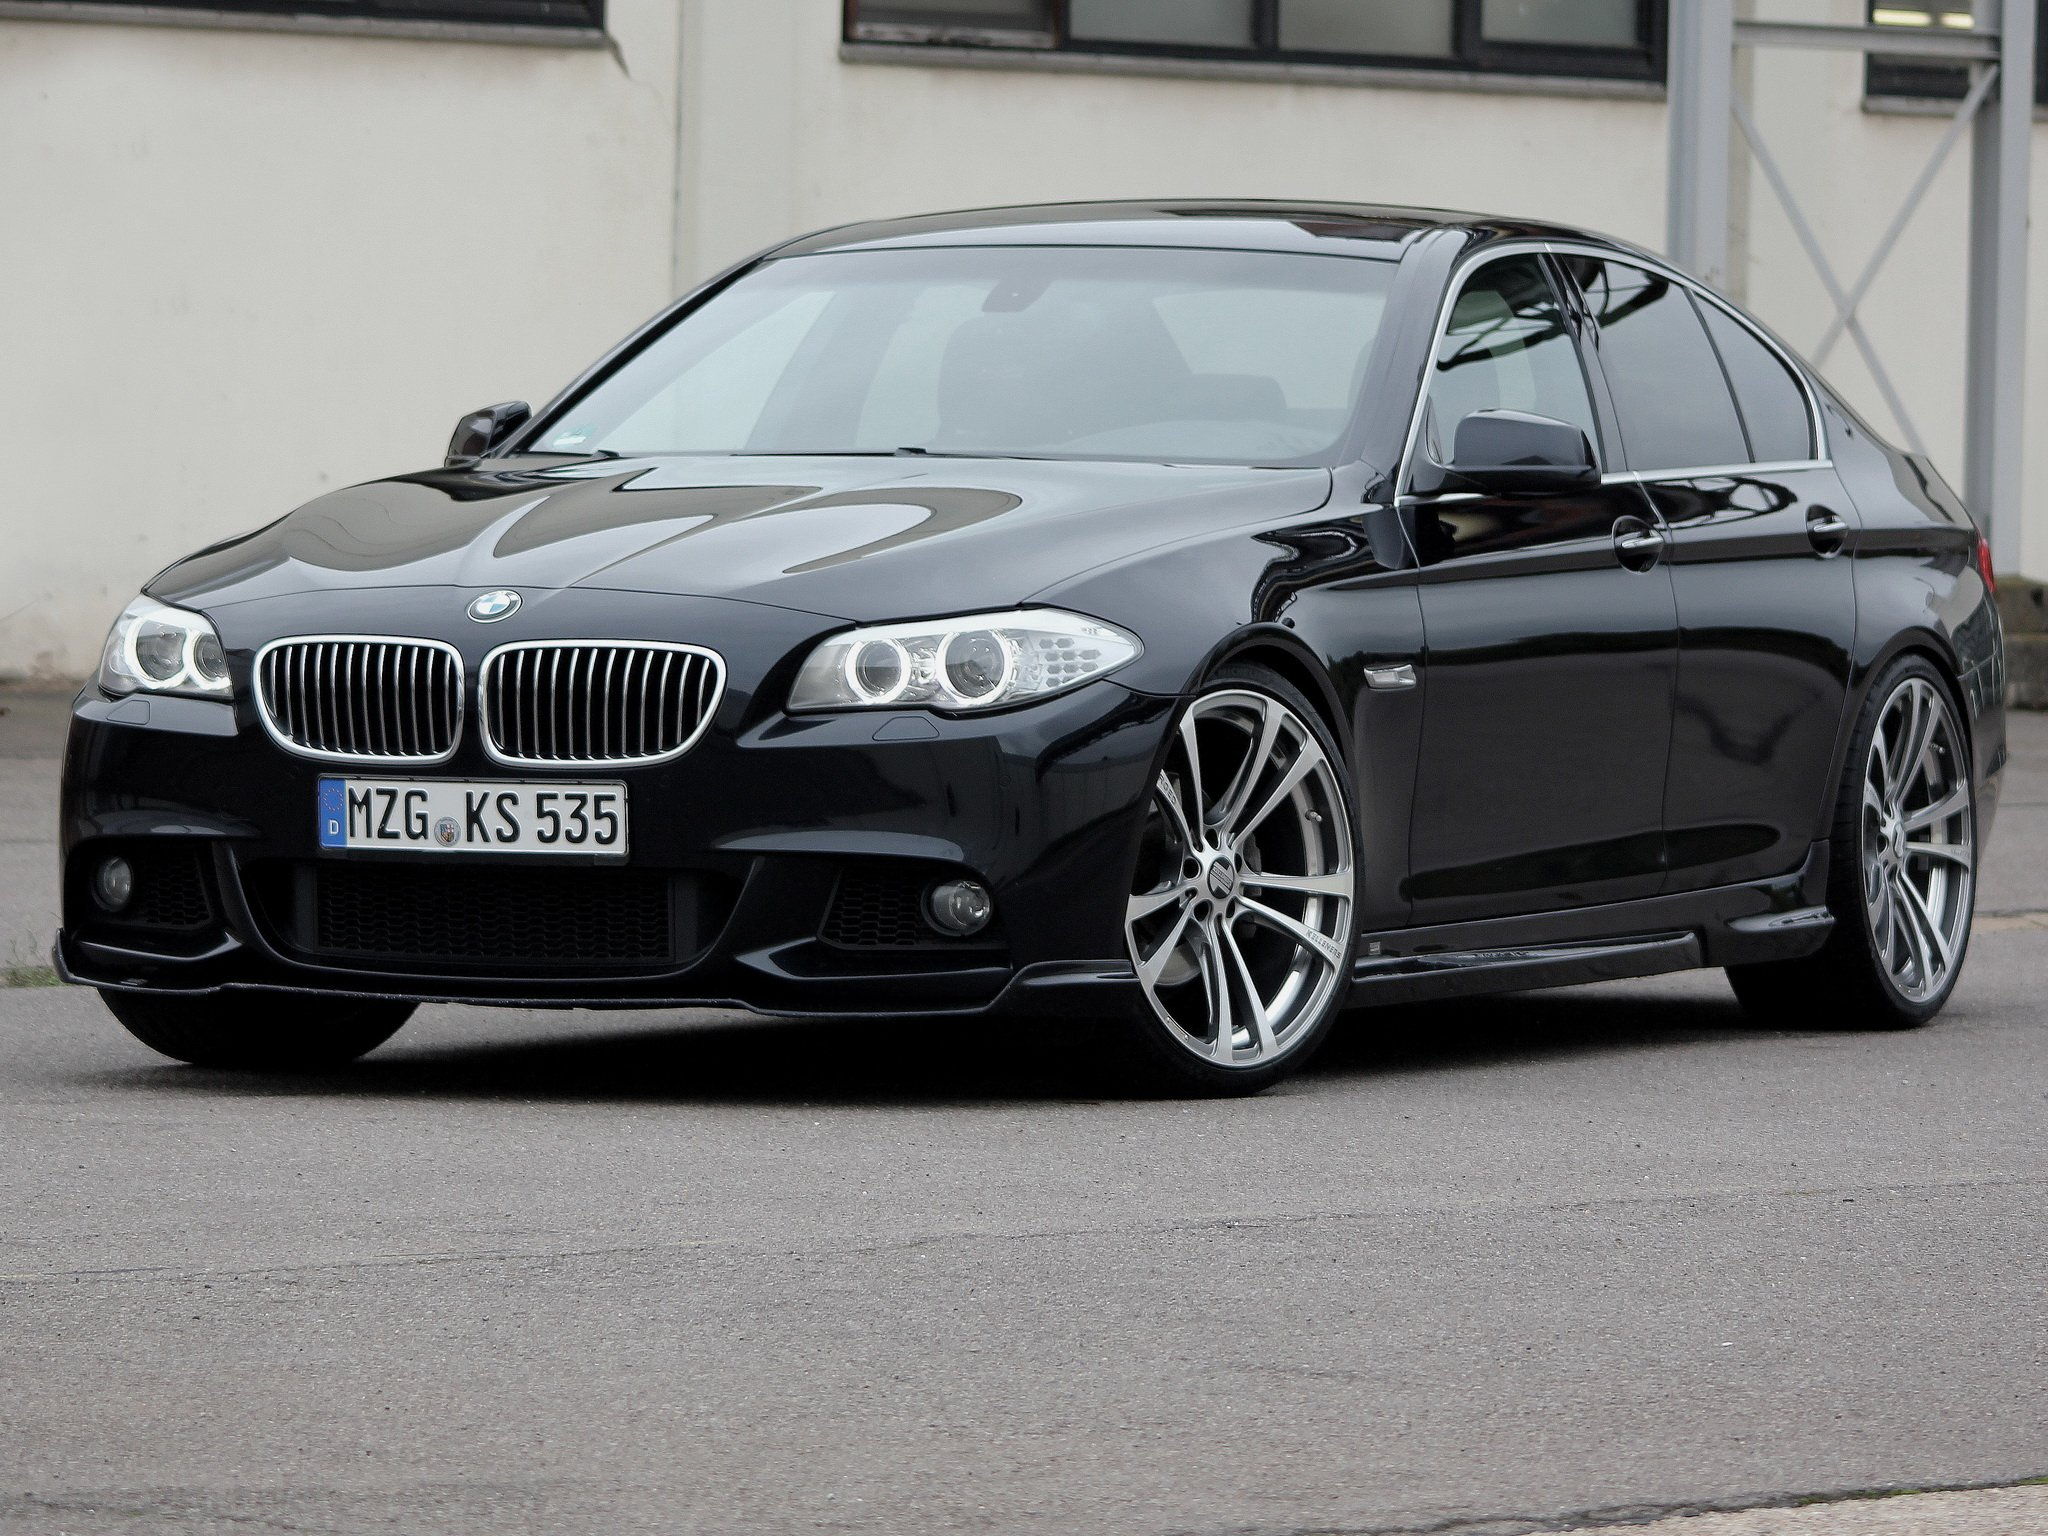 2010 bmw 5er f10 pictures information and specs auto. Black Bedroom Furniture Sets. Home Design Ideas